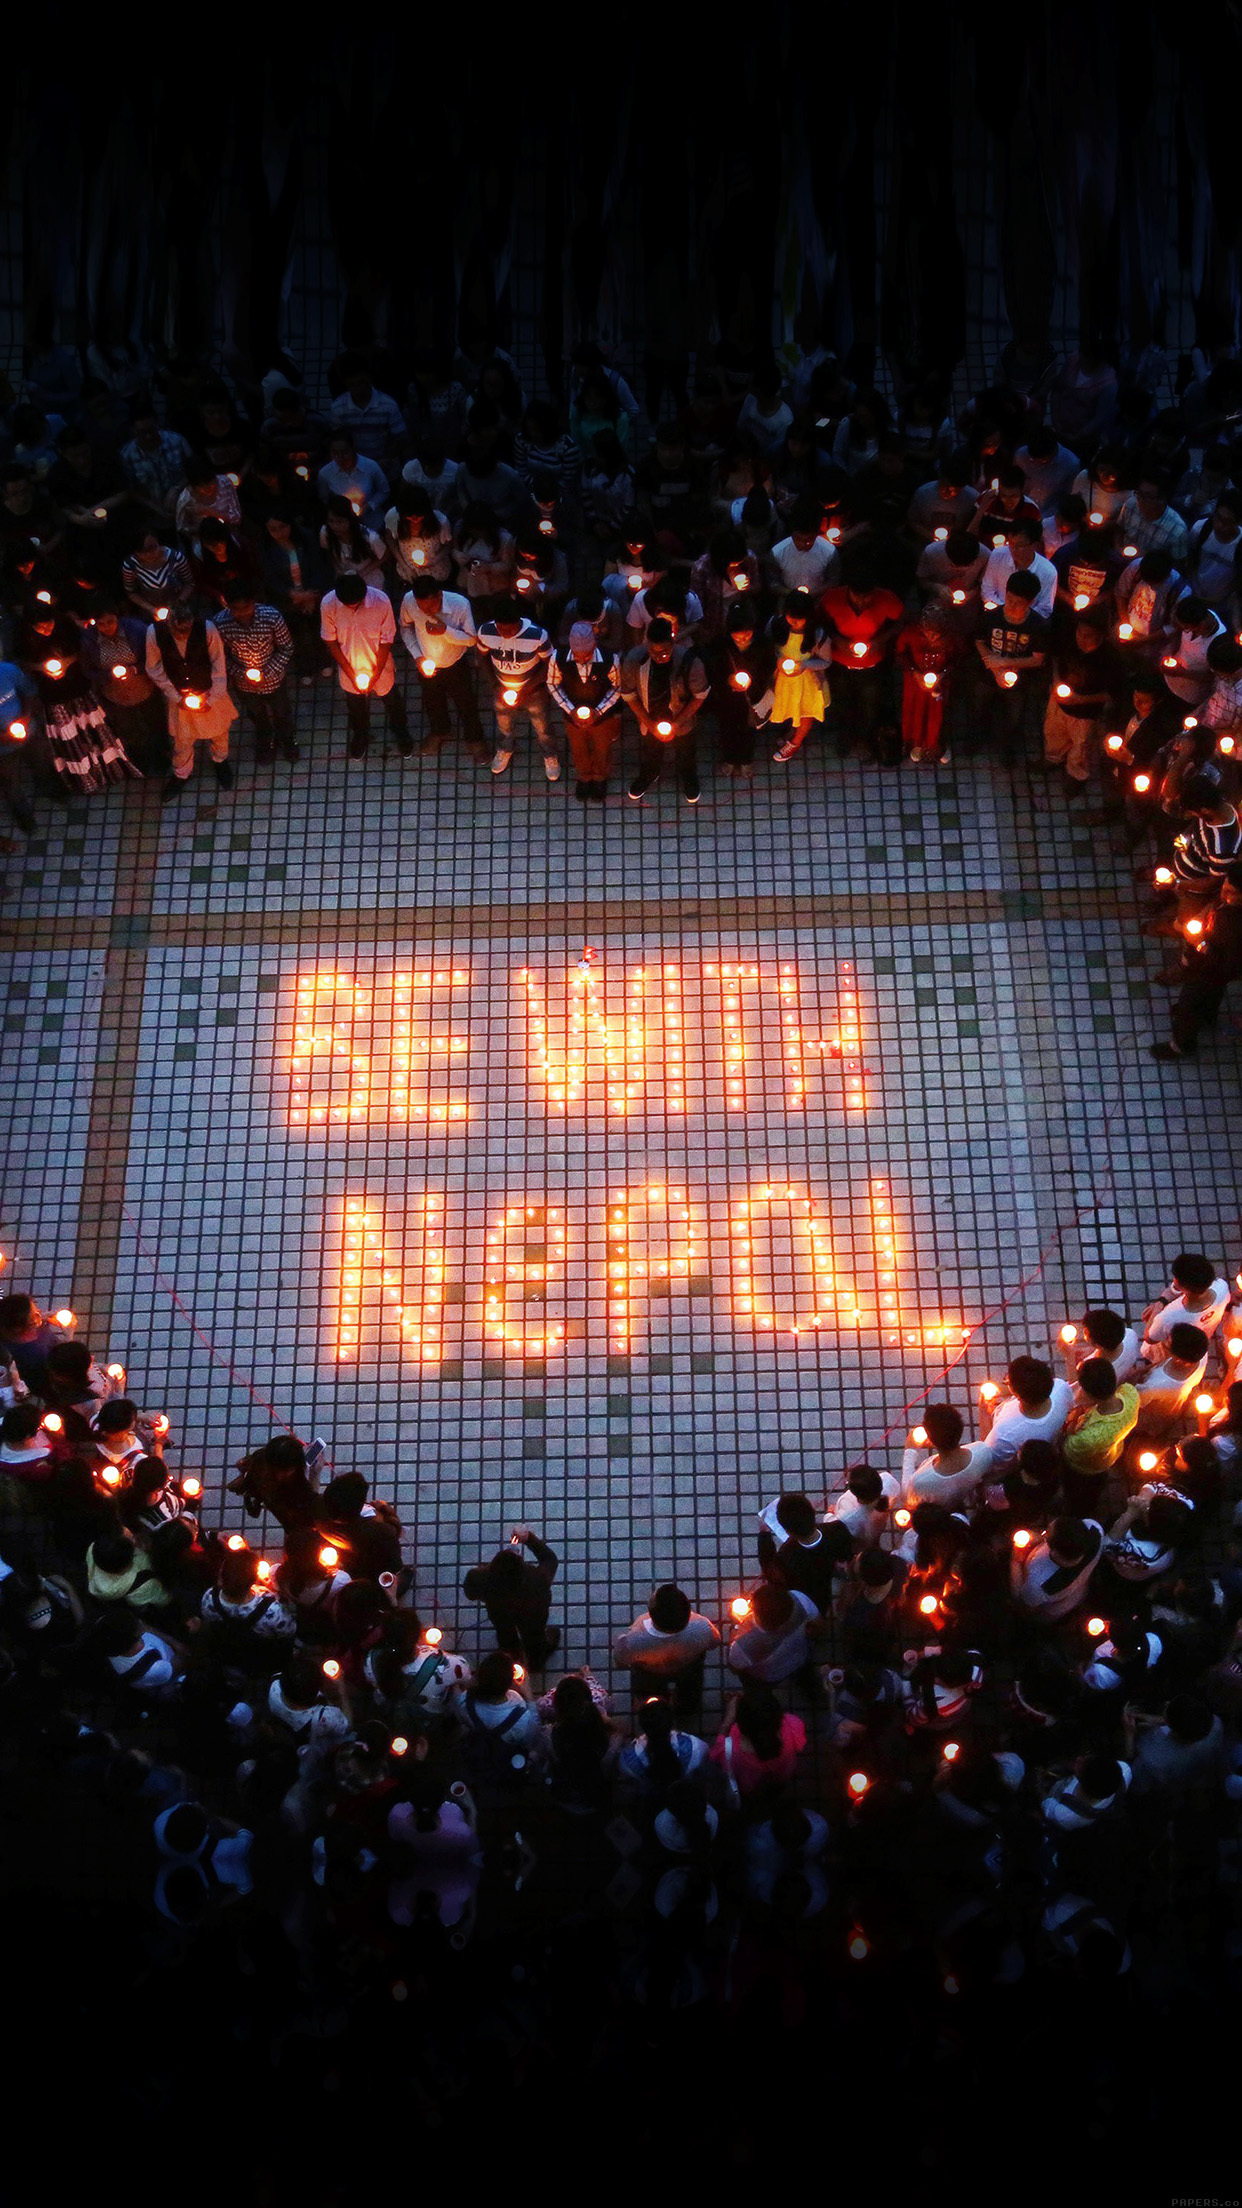 Candle Nepal Earthquake Pray Love 3Wallpapers iPhone Parallax Candle: Nepal earthquake pray love